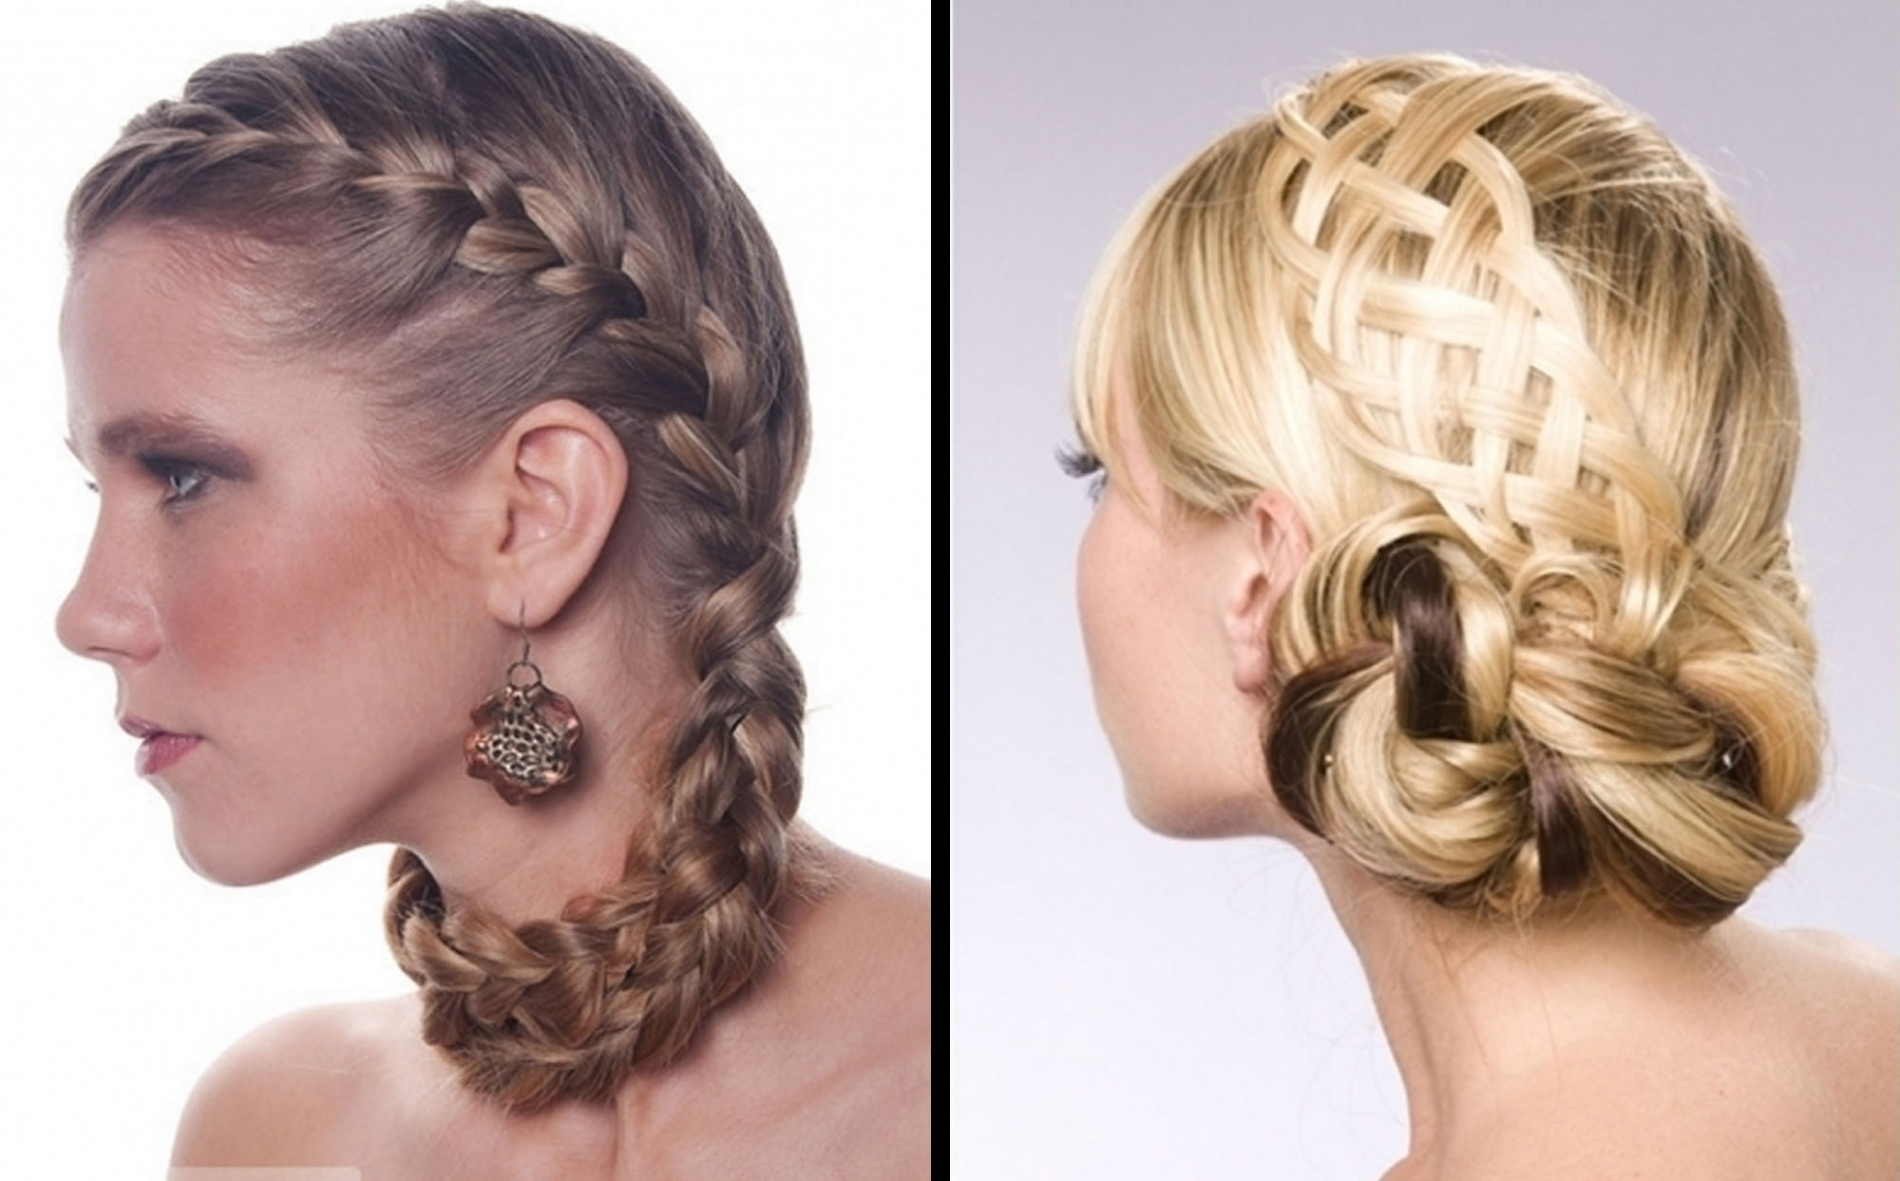 Prom Hairstyles For Long Hair Braided Updo | Latest Hairstyles And In Braided Updo Hairstyles For Long Hair (View 8 of 15)